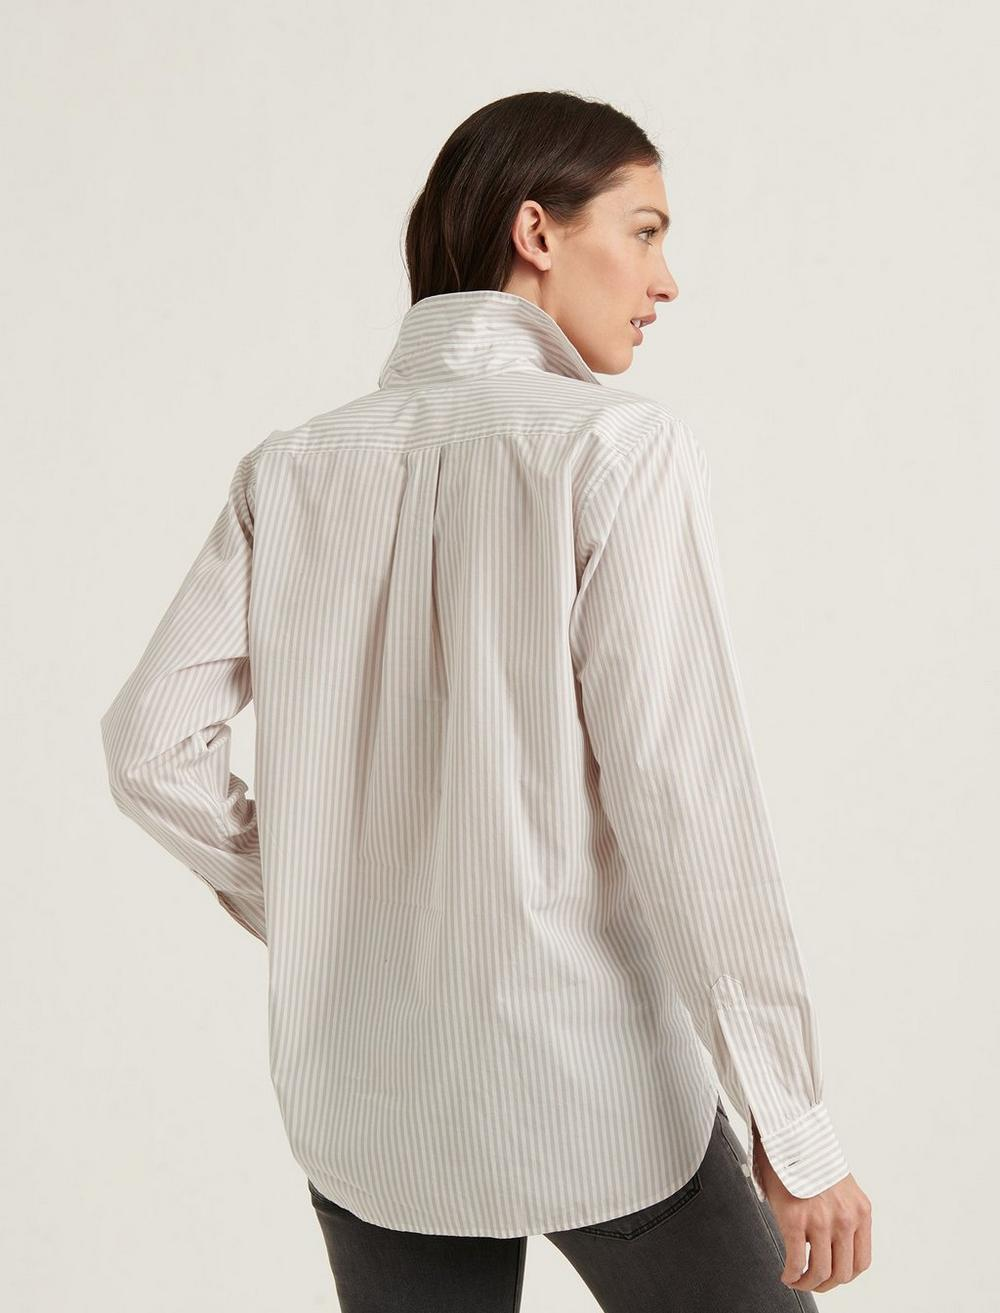 RELAXED SHIRT, image 4